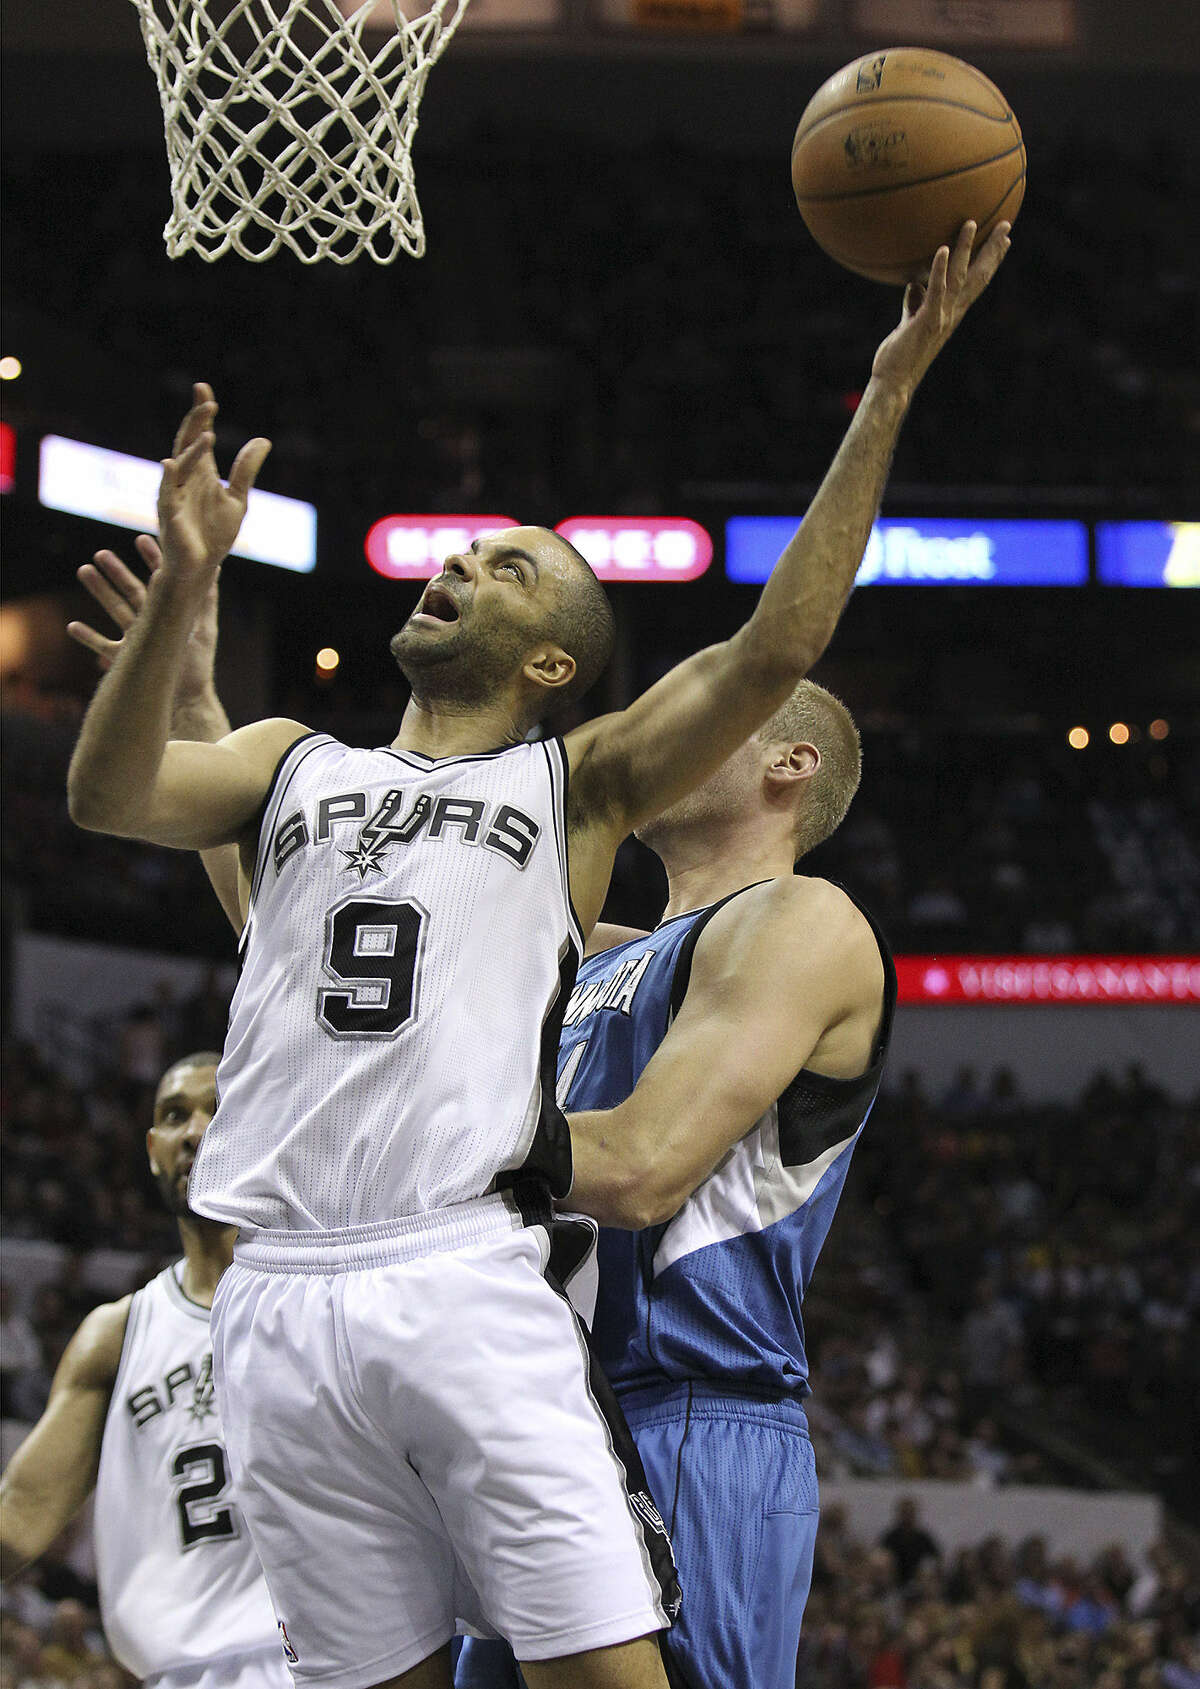 Tony Parker averaged only 6.3 points per game in the Spurs' recent three-game skid.